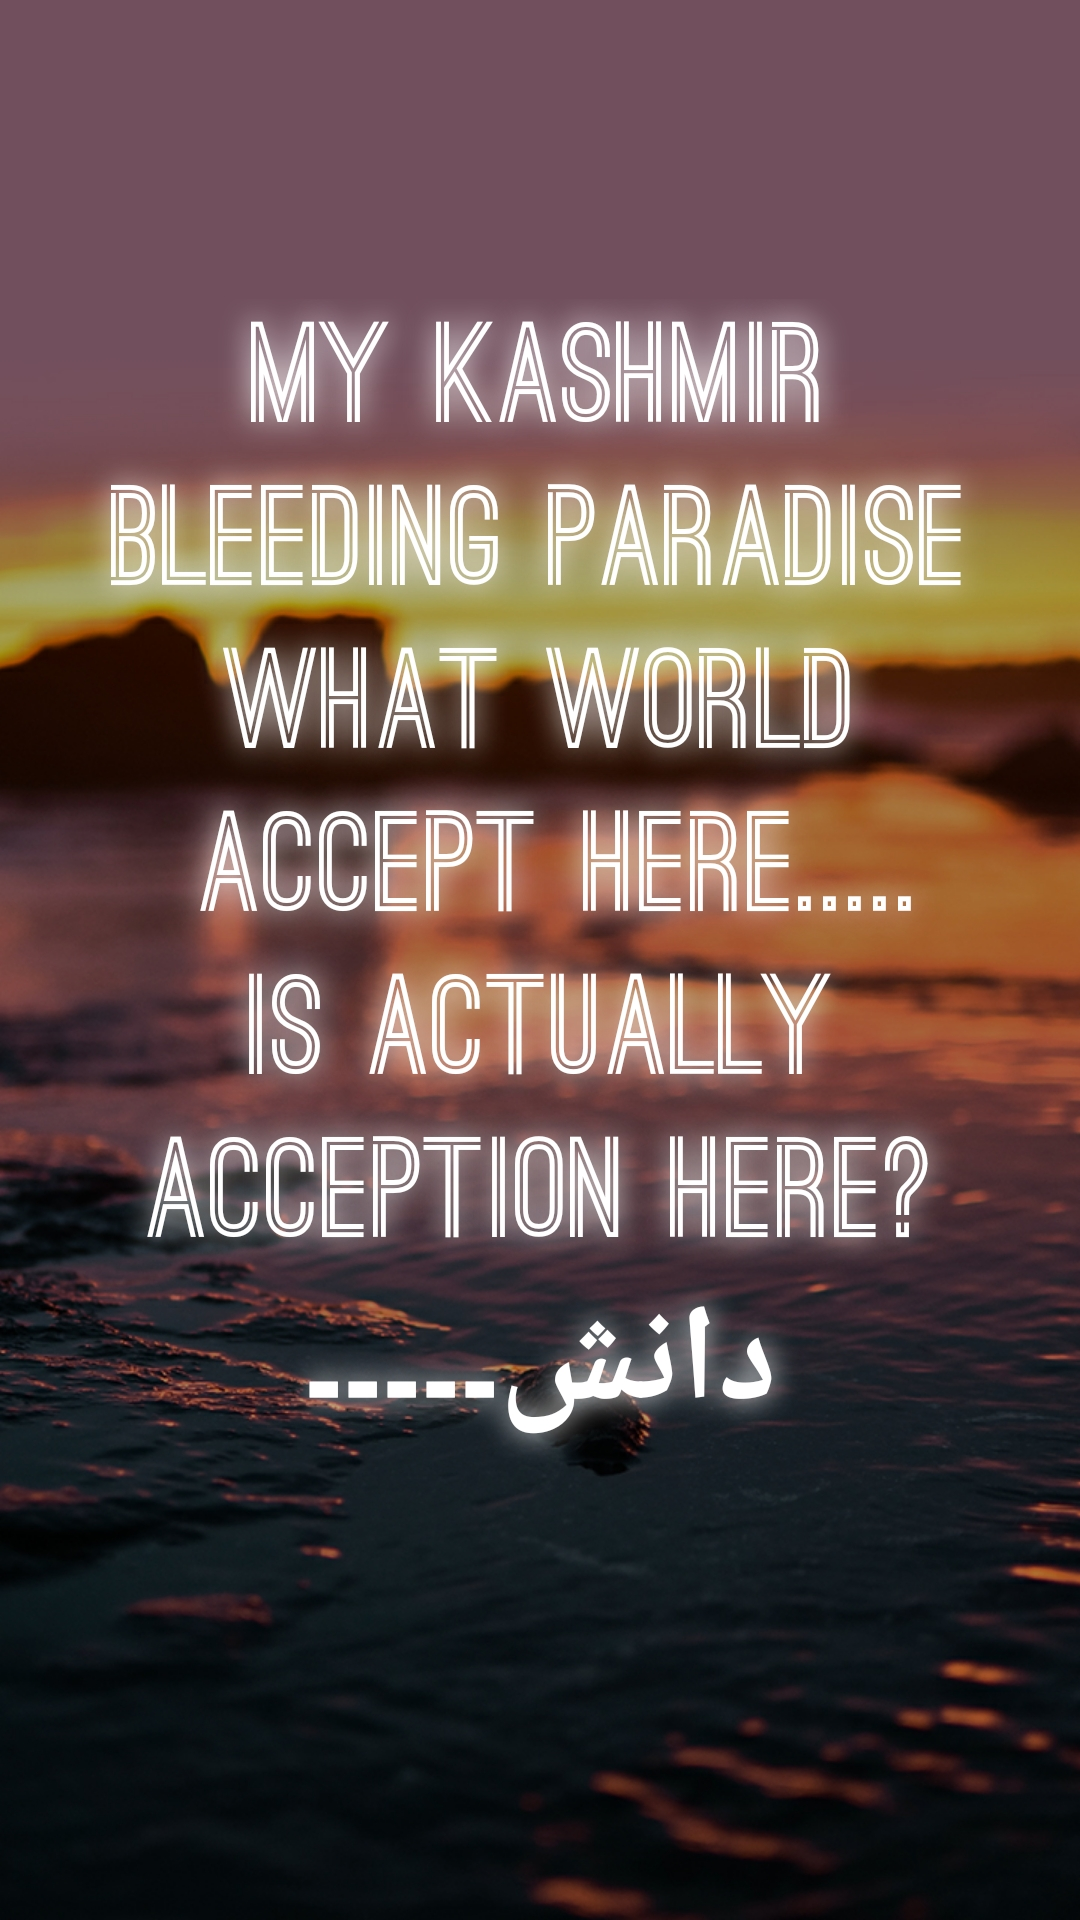 My Kashmir Bleeding paradise What world  accept here..... is actually acception here? دانش۔۔۔۔۔